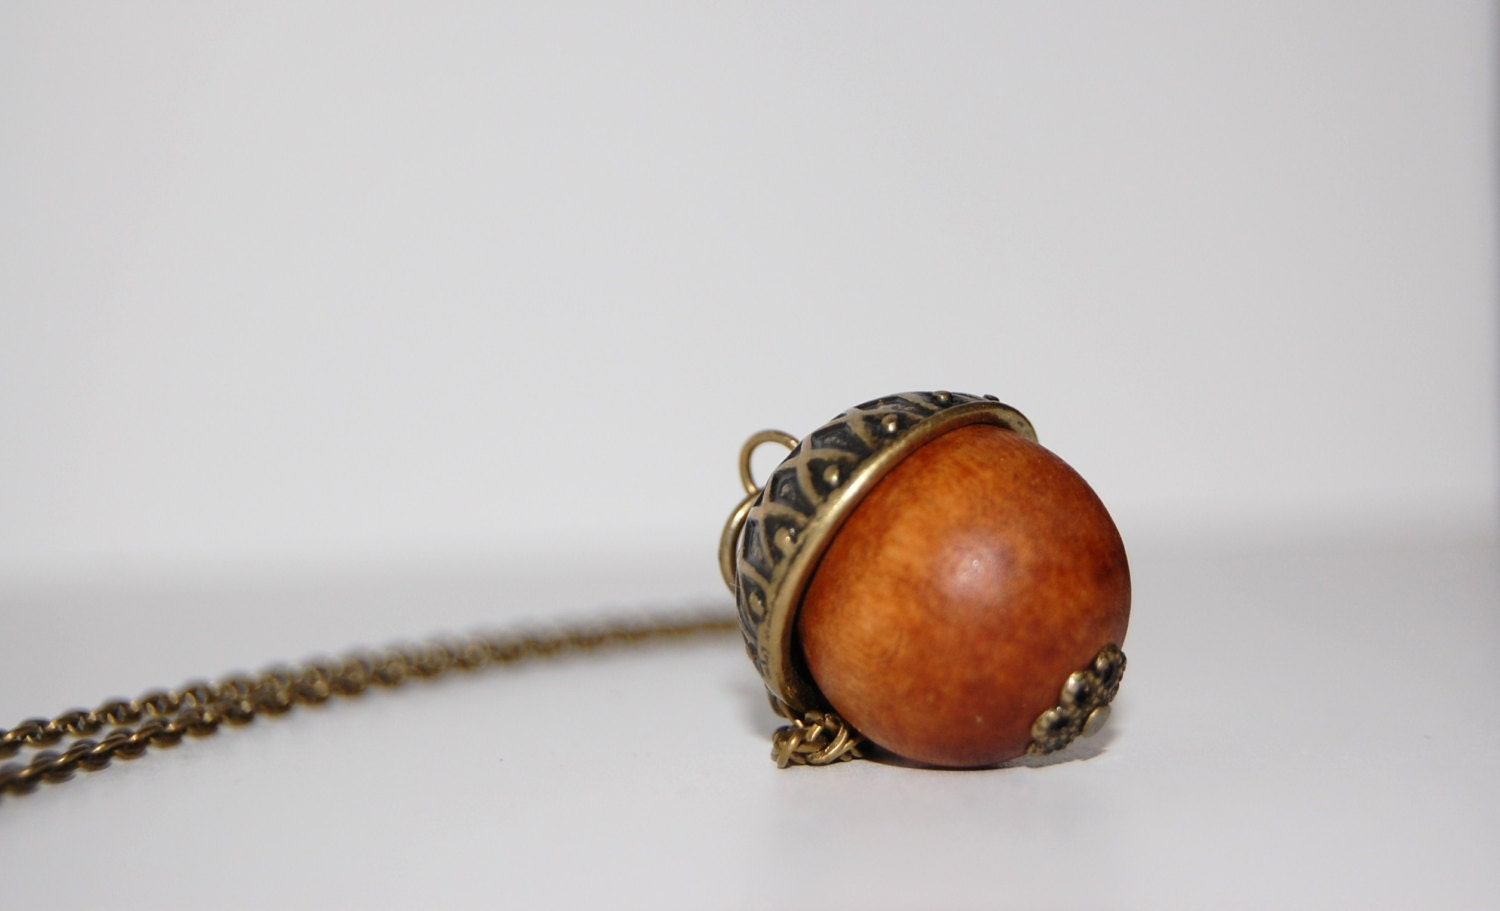 Metal and Wood Acorn Charm Necklace - WinstonGrady